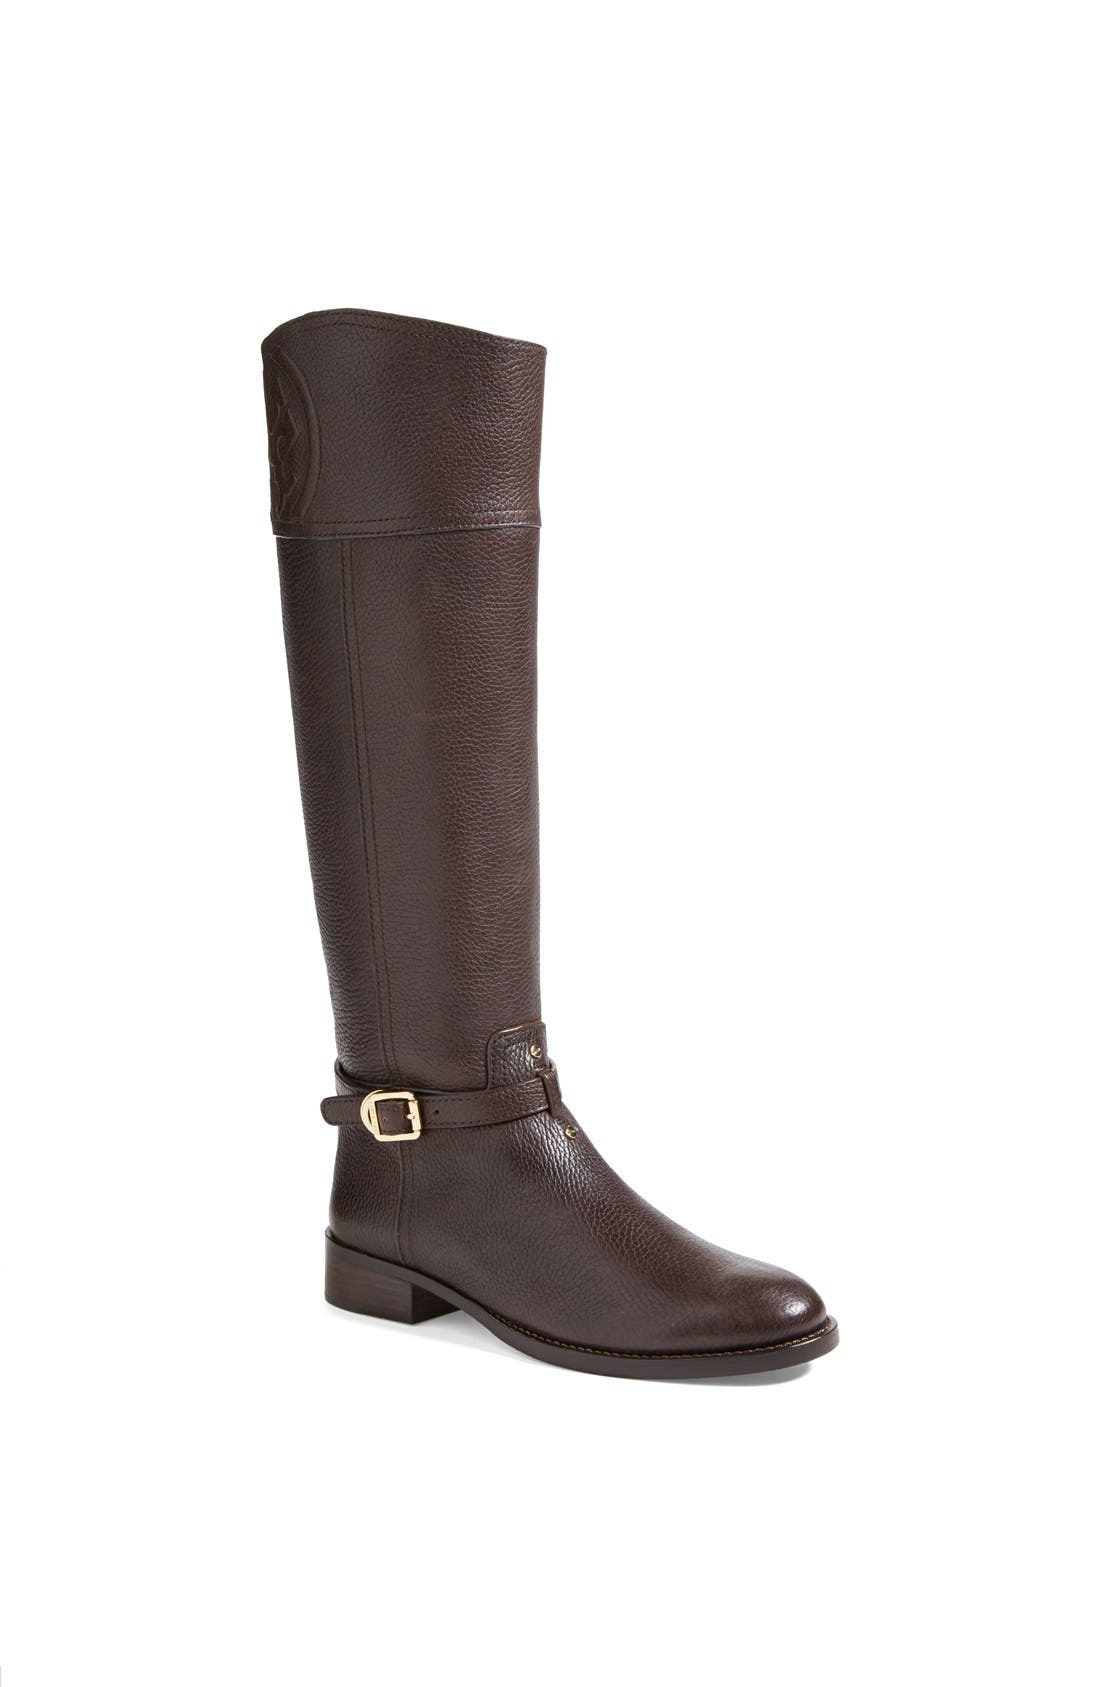 Alternate Image 1 Selected - Tory Burch 'Marlene' Leather Riding Boot